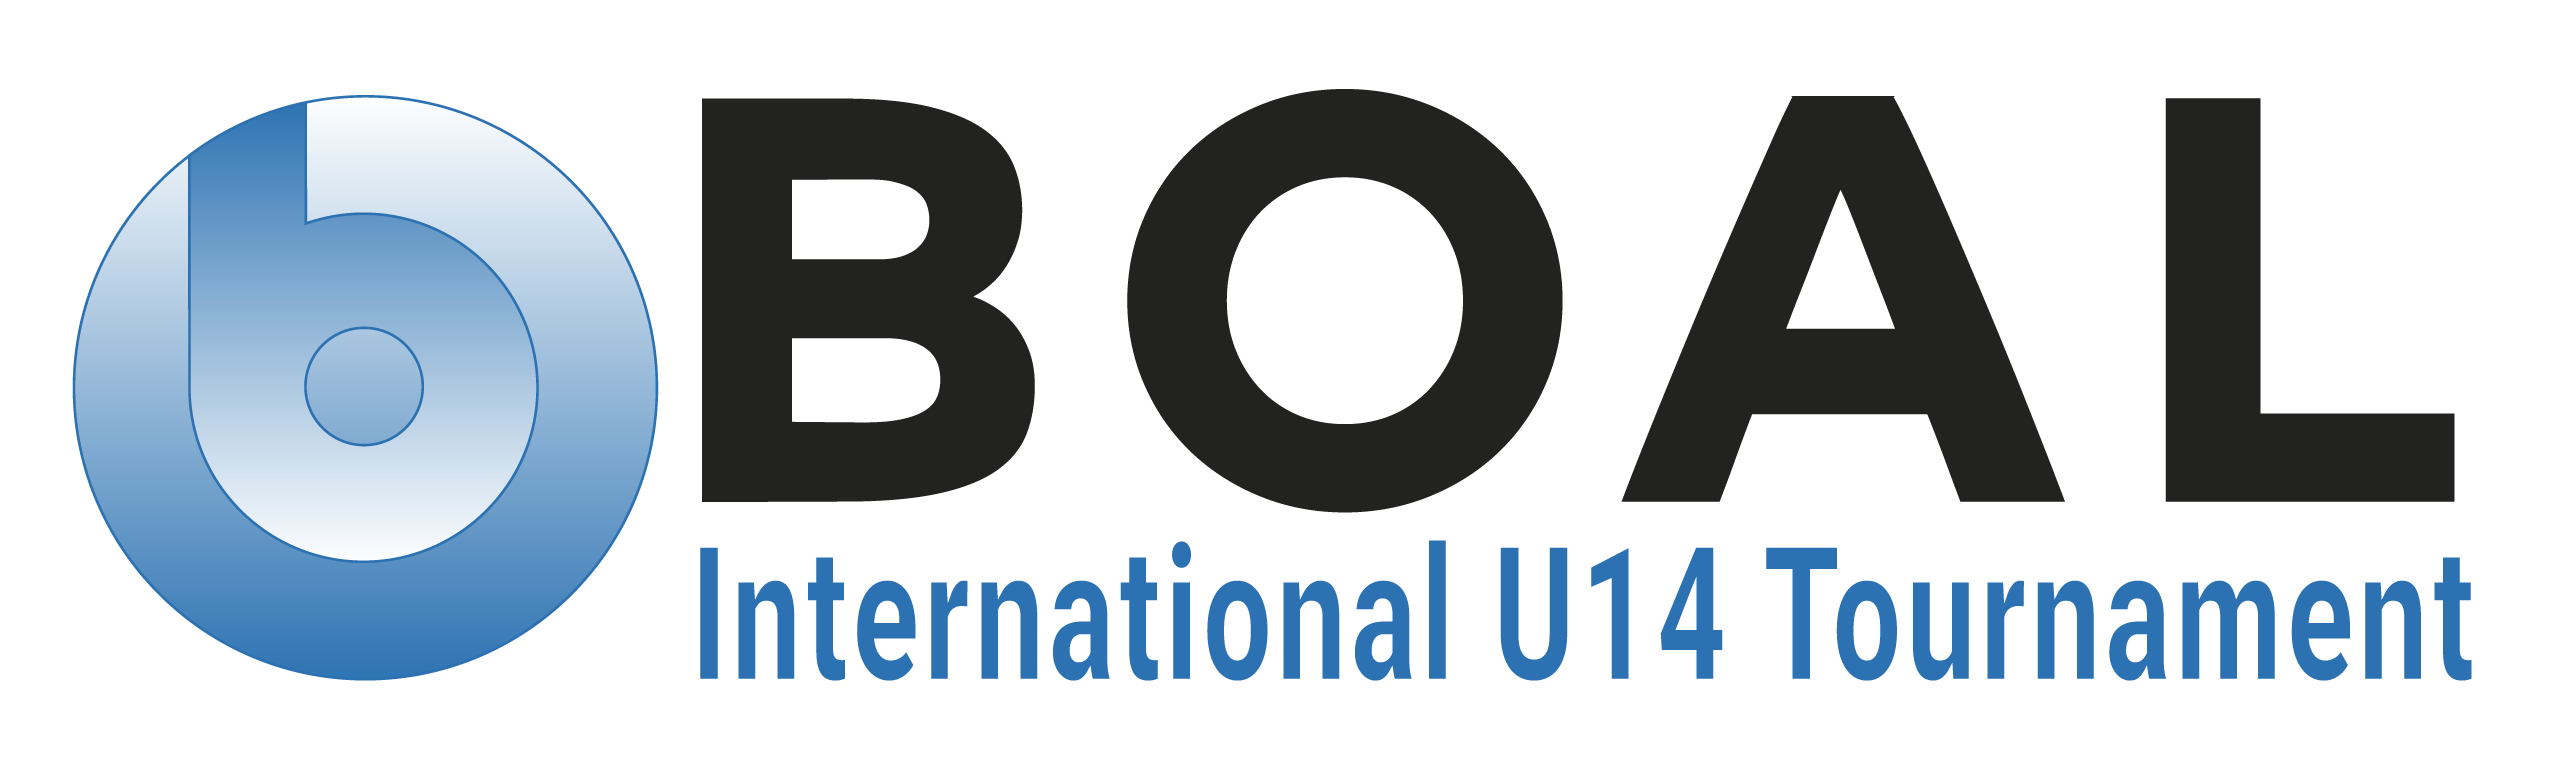 BOAL International U14 Tournament